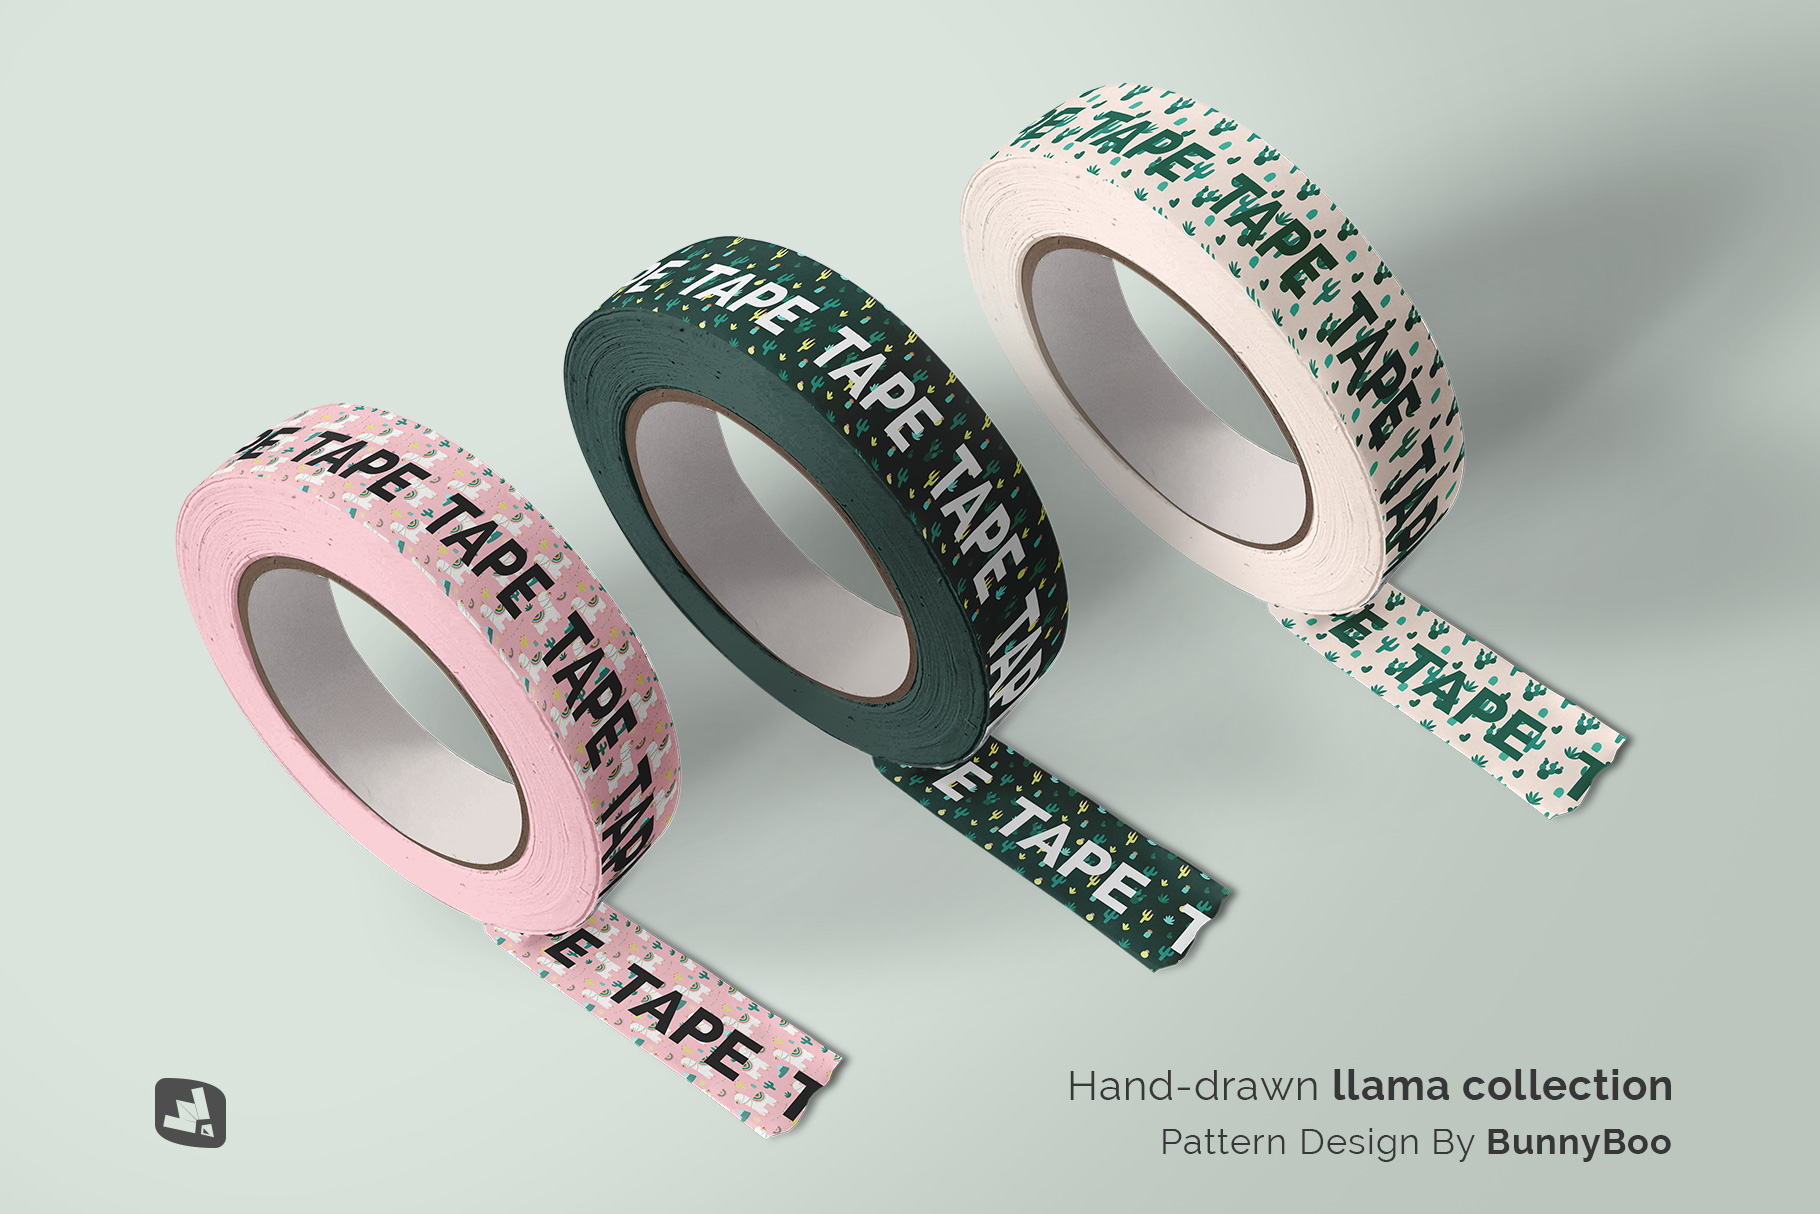 designer's credit of the themed washi tape roll mockup